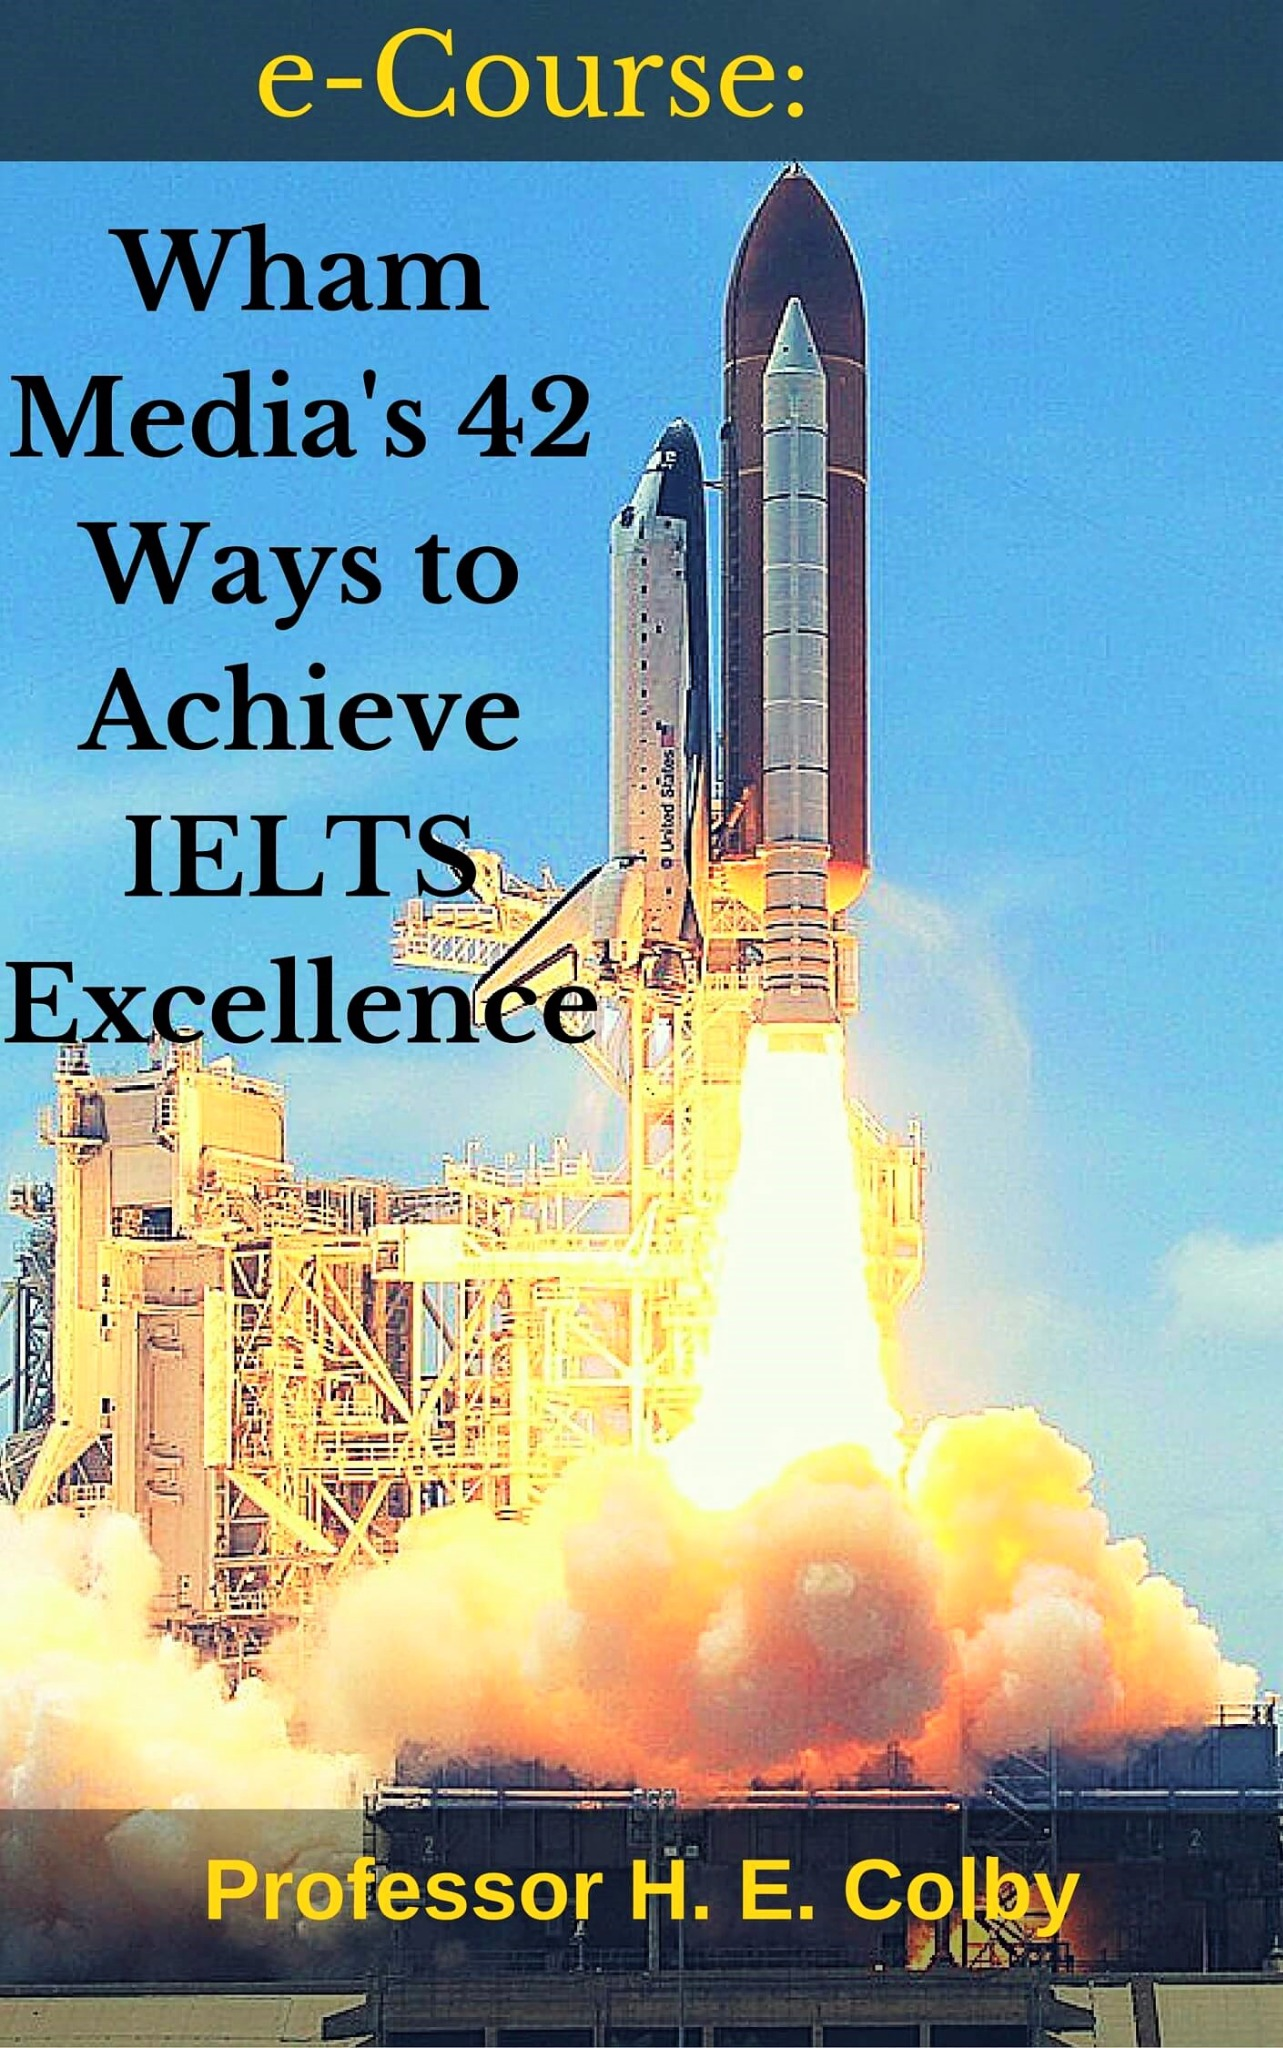 Wham Media's 42 Ways to Achieve IELTS Excellence: Video e-Course